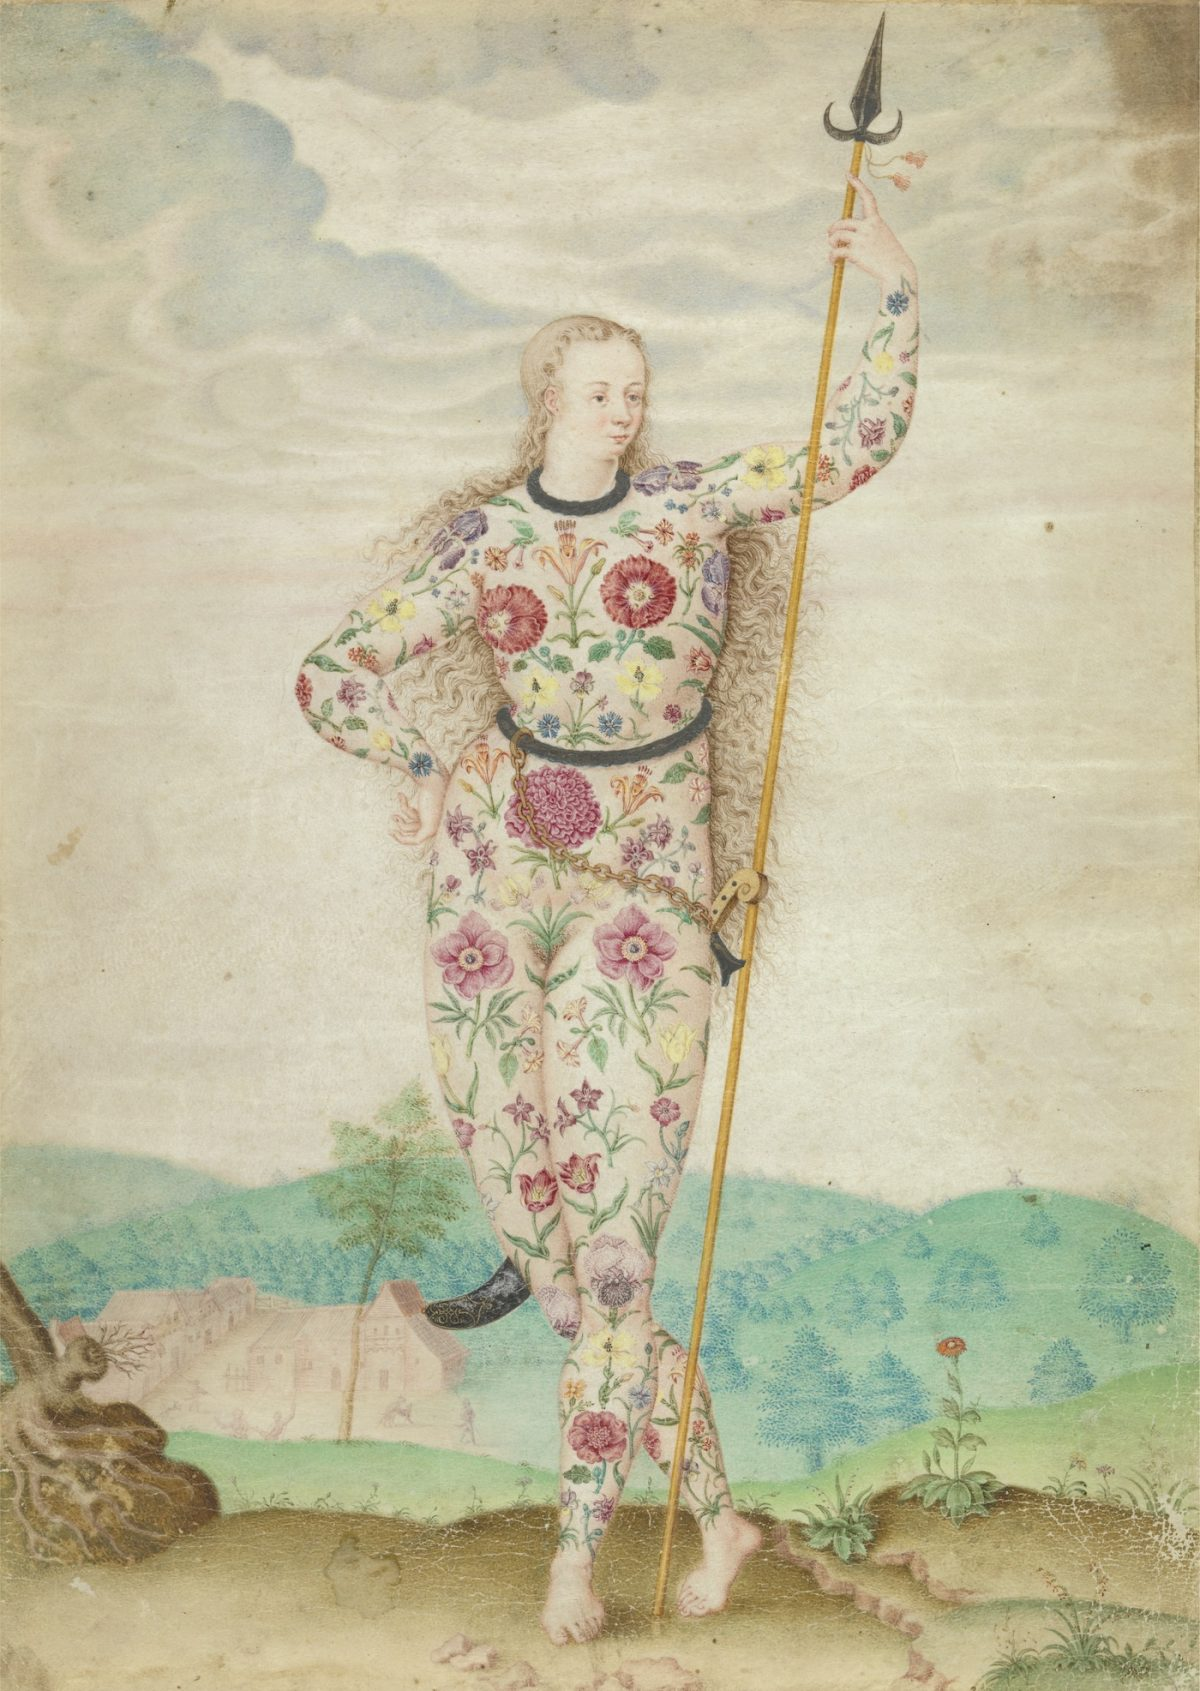 A Young Daughter of the Picts by Jacques Le Moyne de Morgues (French ca. 1533-88), watercolour and gouache, touched with gold on parchment, ca. 1588 Yale Center for British Art, Paul Mellon Collection